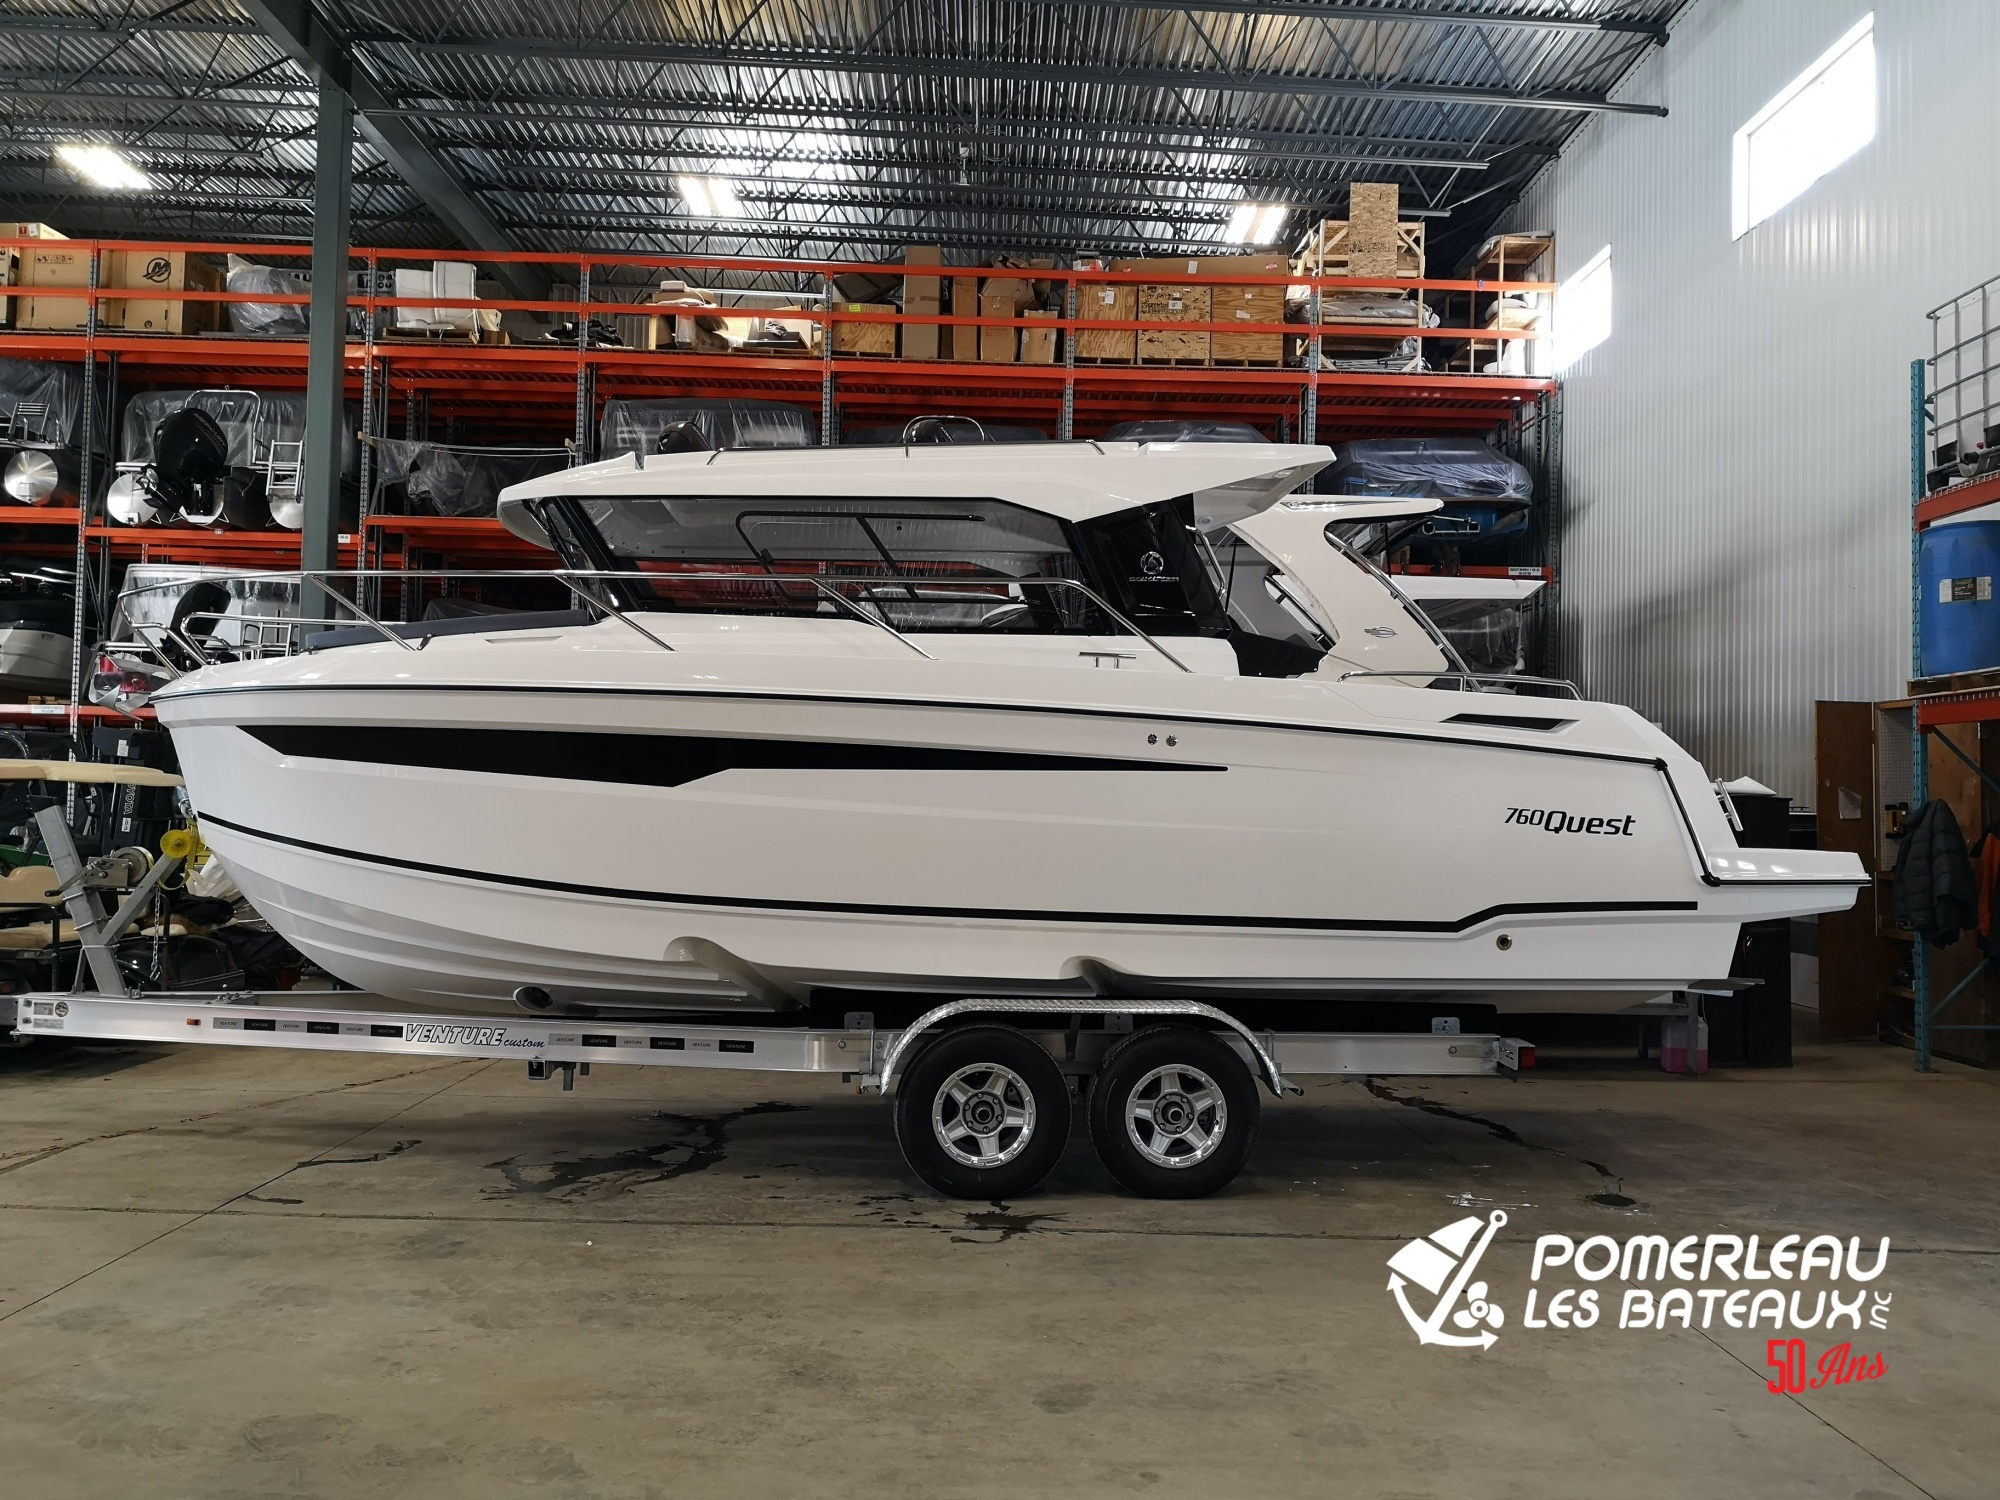 Parker Boats 760 Quest - IMG_20210125_090928